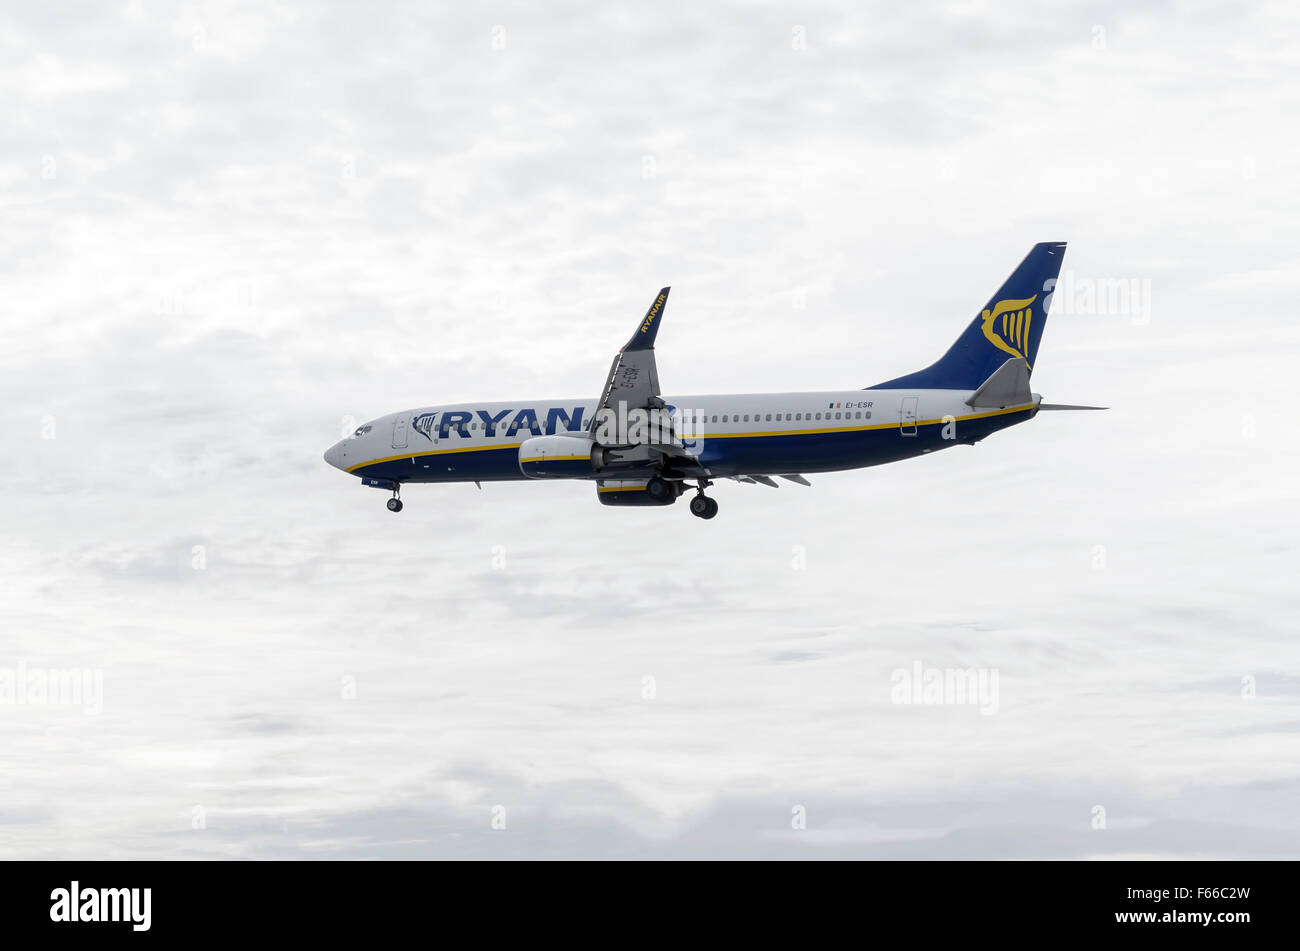 Aircraft -Boeing 737-8AS-, of -Ryanair- airline, is landing on Madrid-Barajas -Adolfo Suarez- airport. Stock Photo